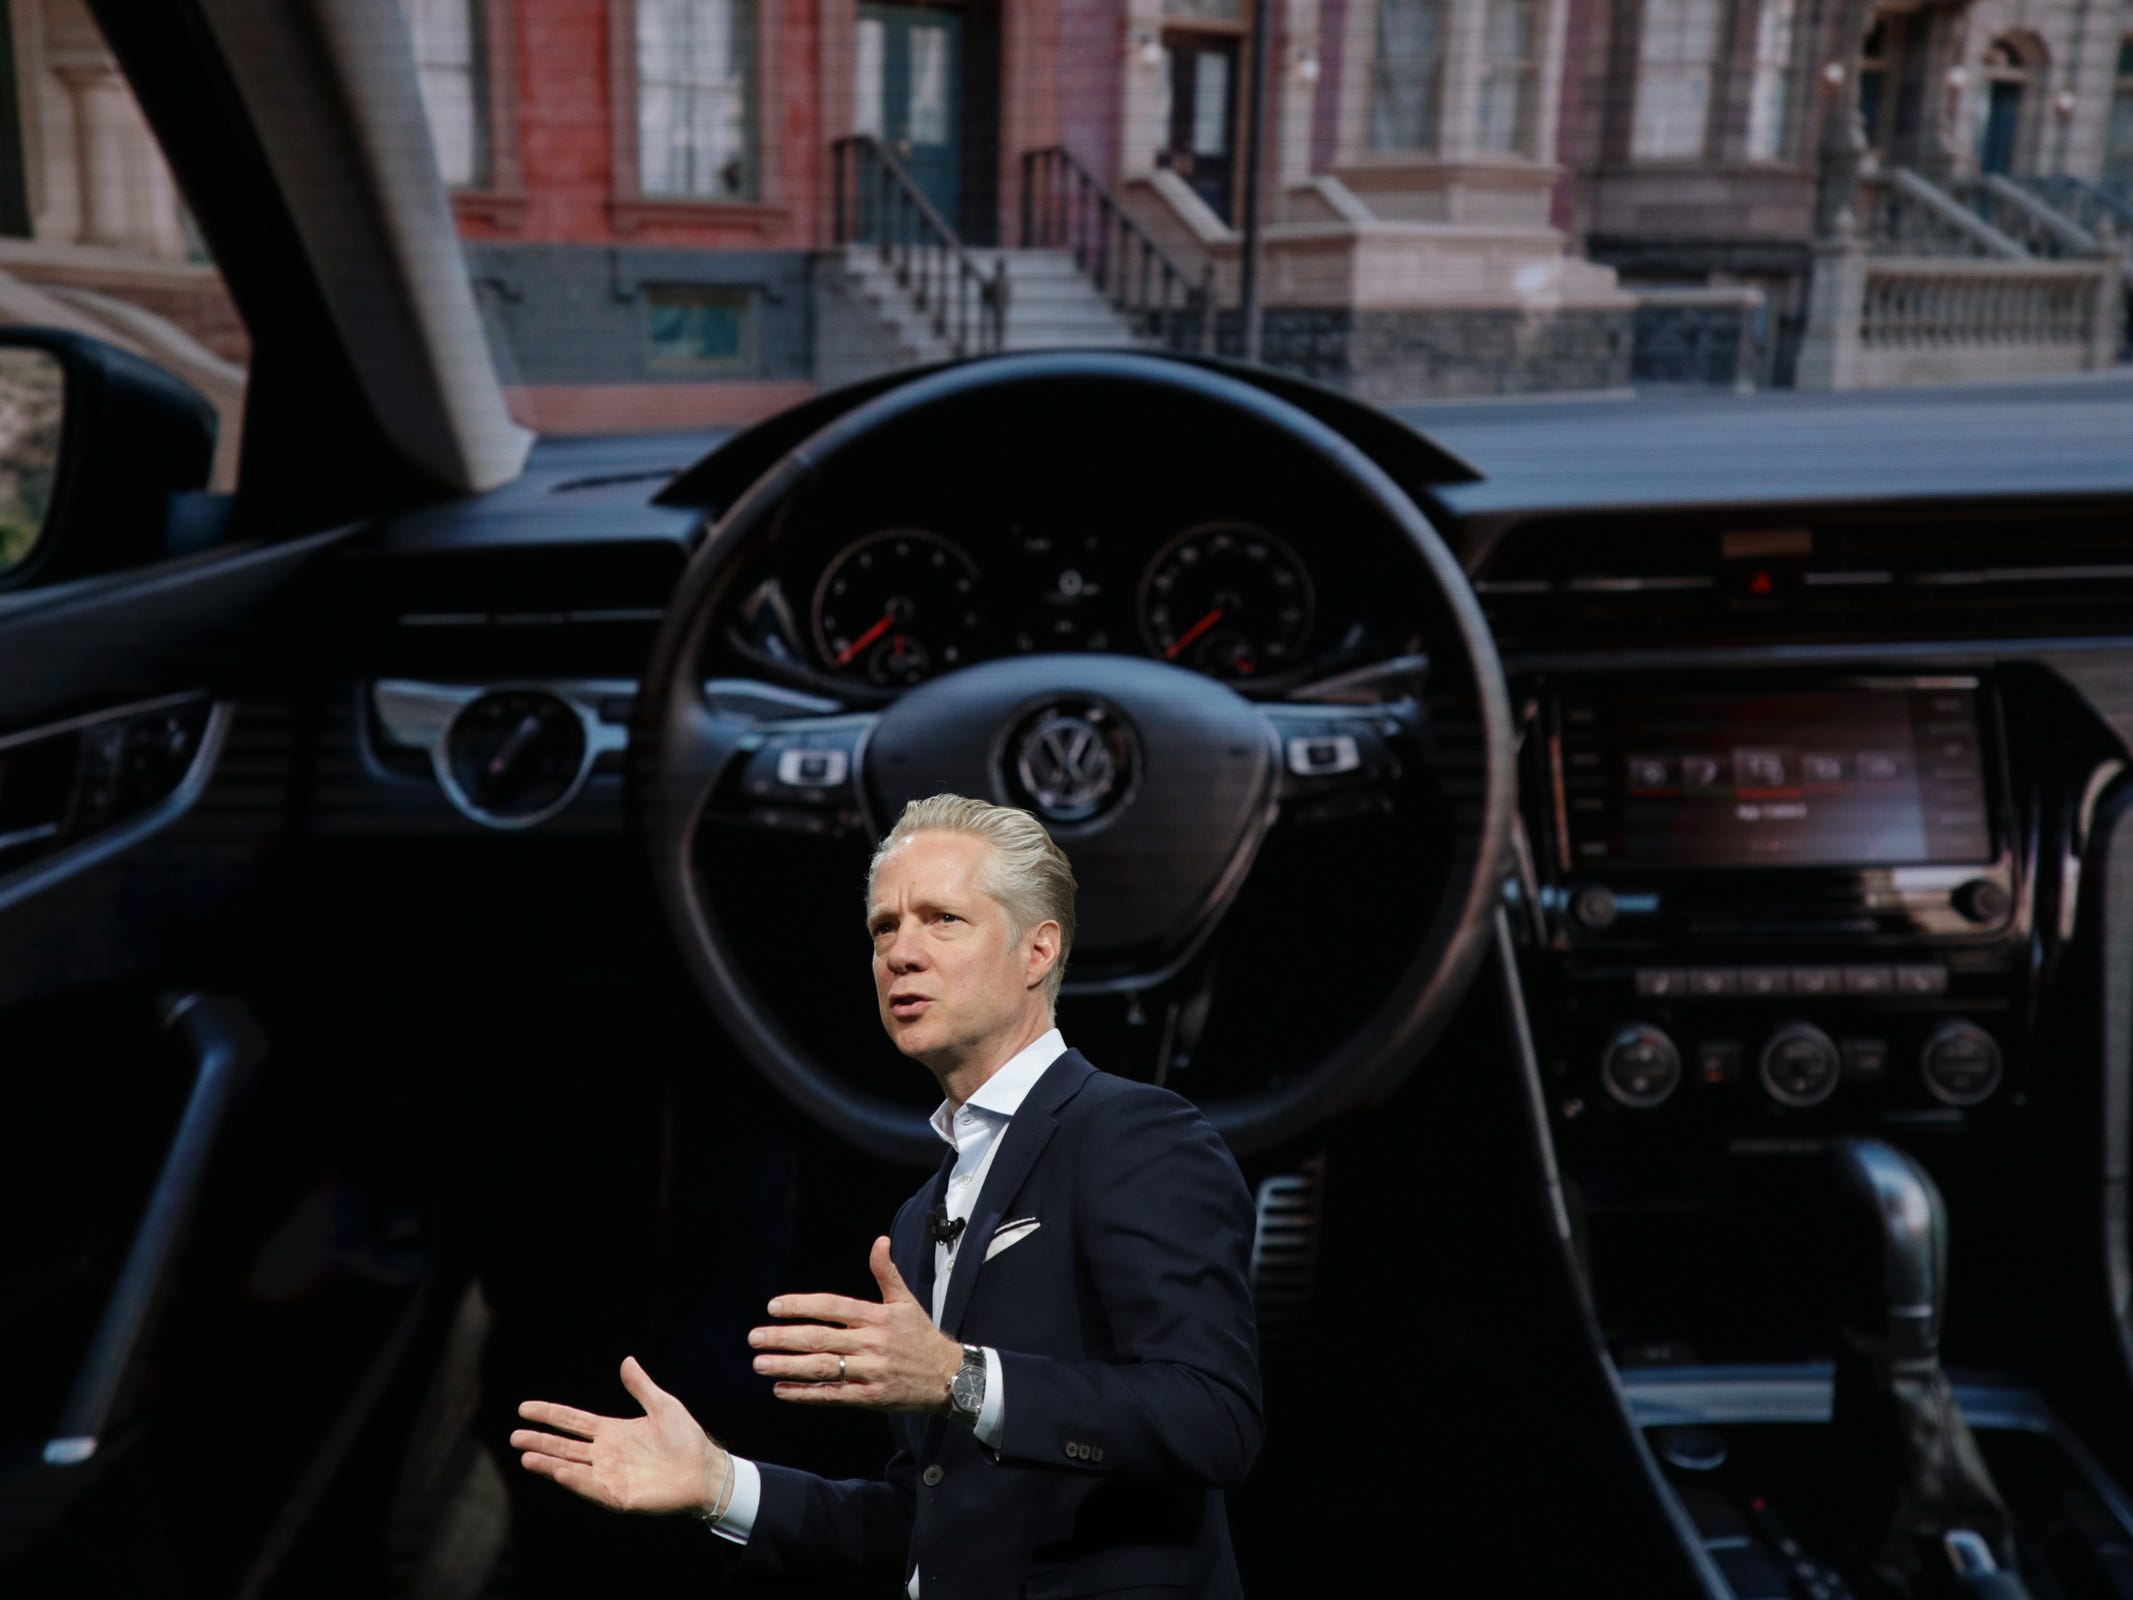 Scott Keogh, ceo and president of Volkswagen Group of America talks about the 2020 Volkswagen Passat revealed at the 2019 North American International Auto Show held at Cobo Center in downtown Detroit on Monday, Jan. 14, 2019.